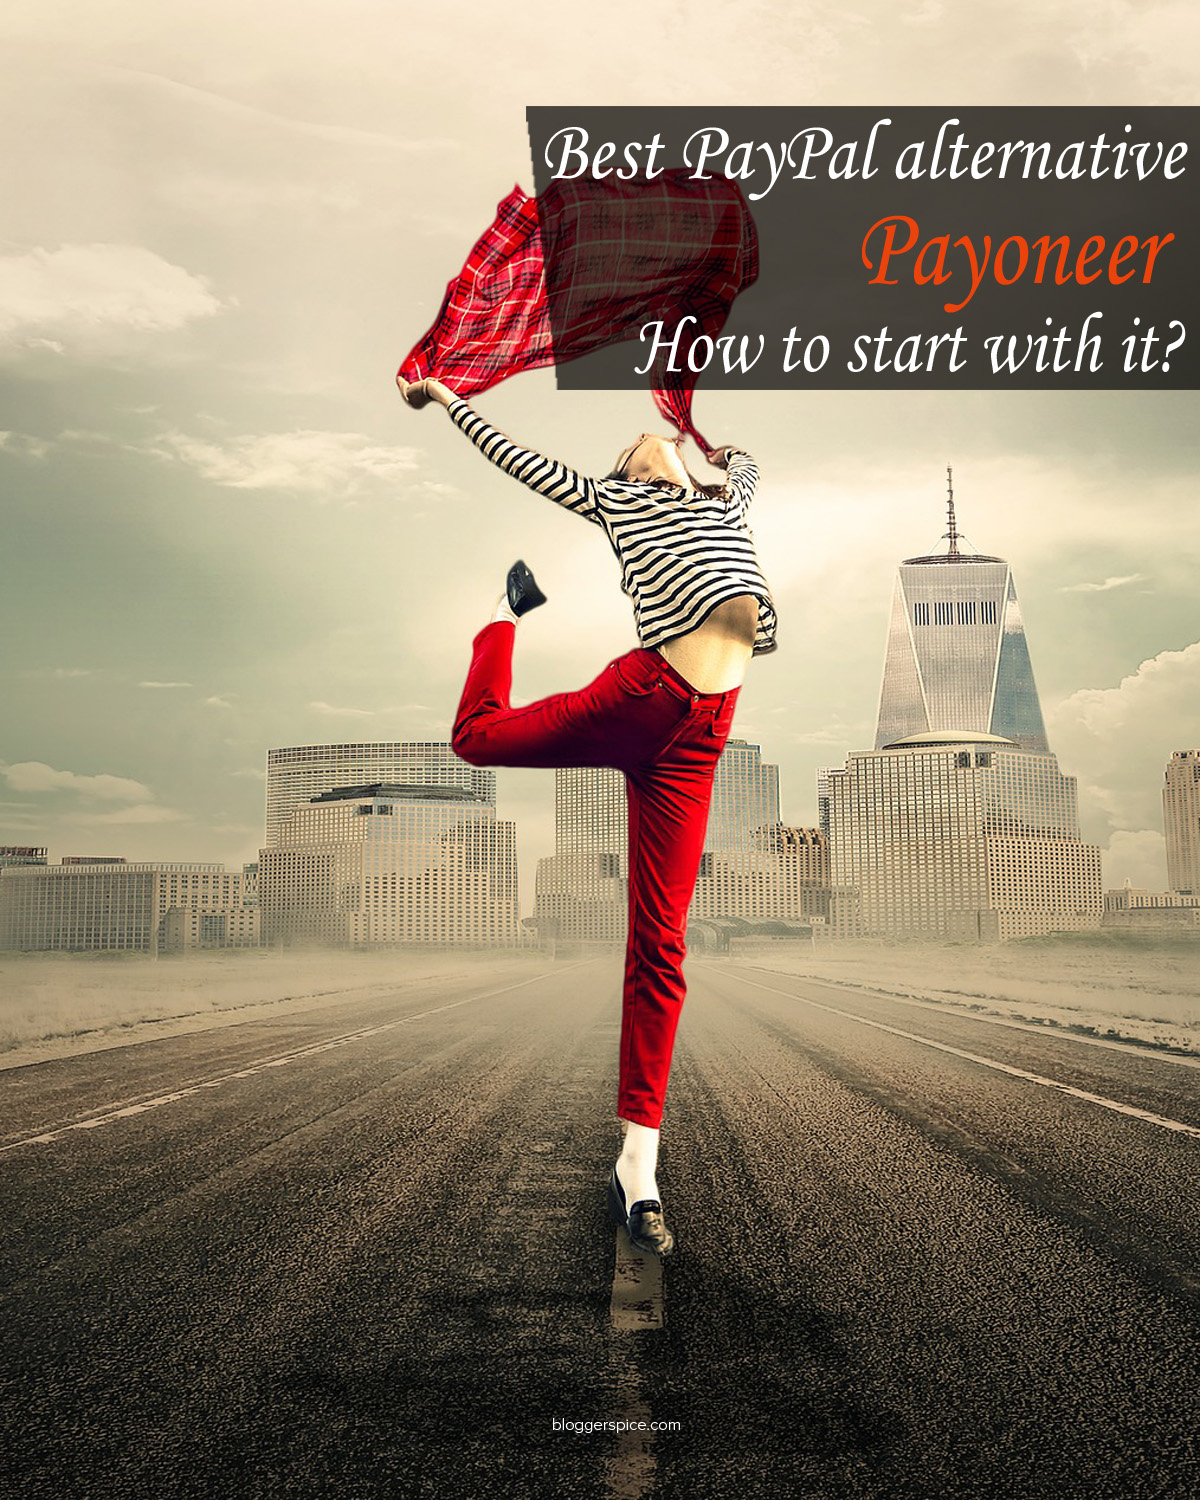 Best PayPal alternative Payoneer: How to start with it?